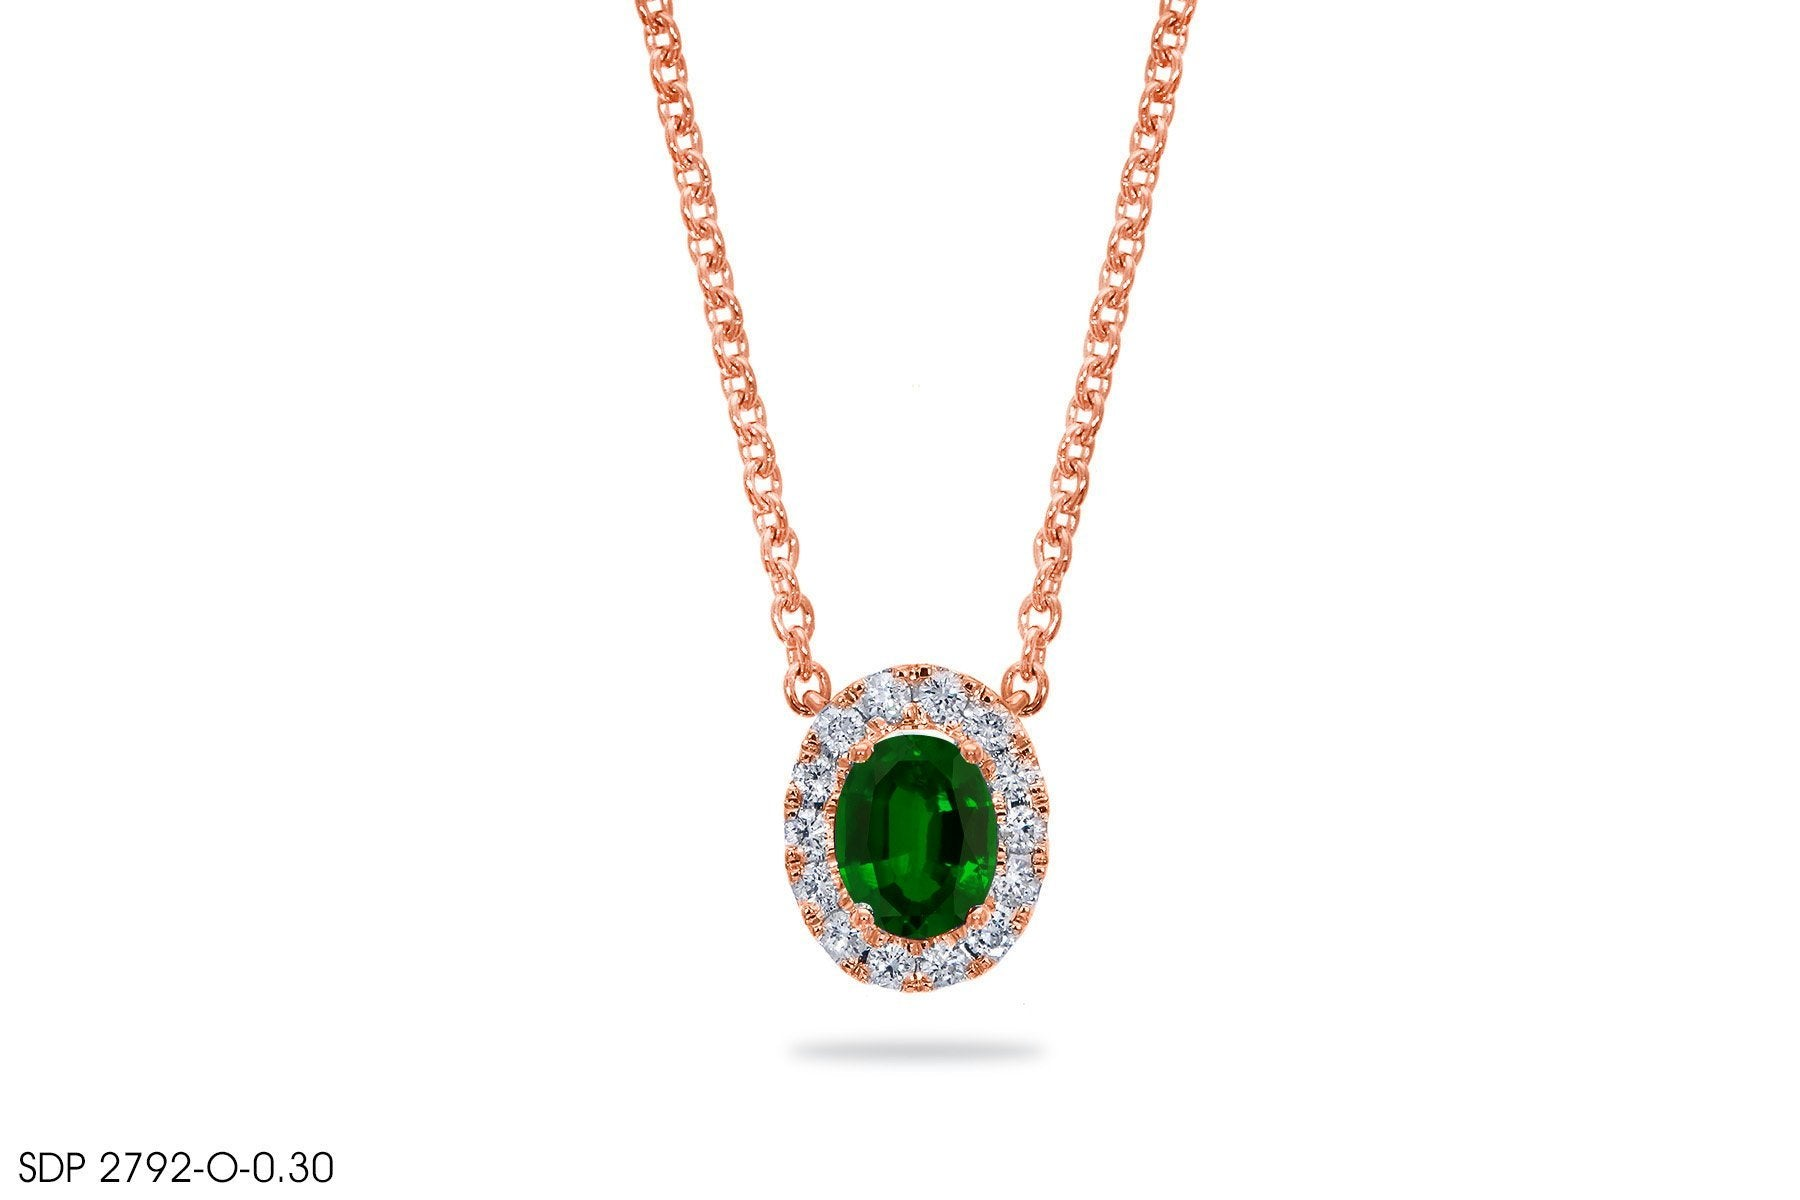 Oval-Shaped Emerald Diamond Pendant